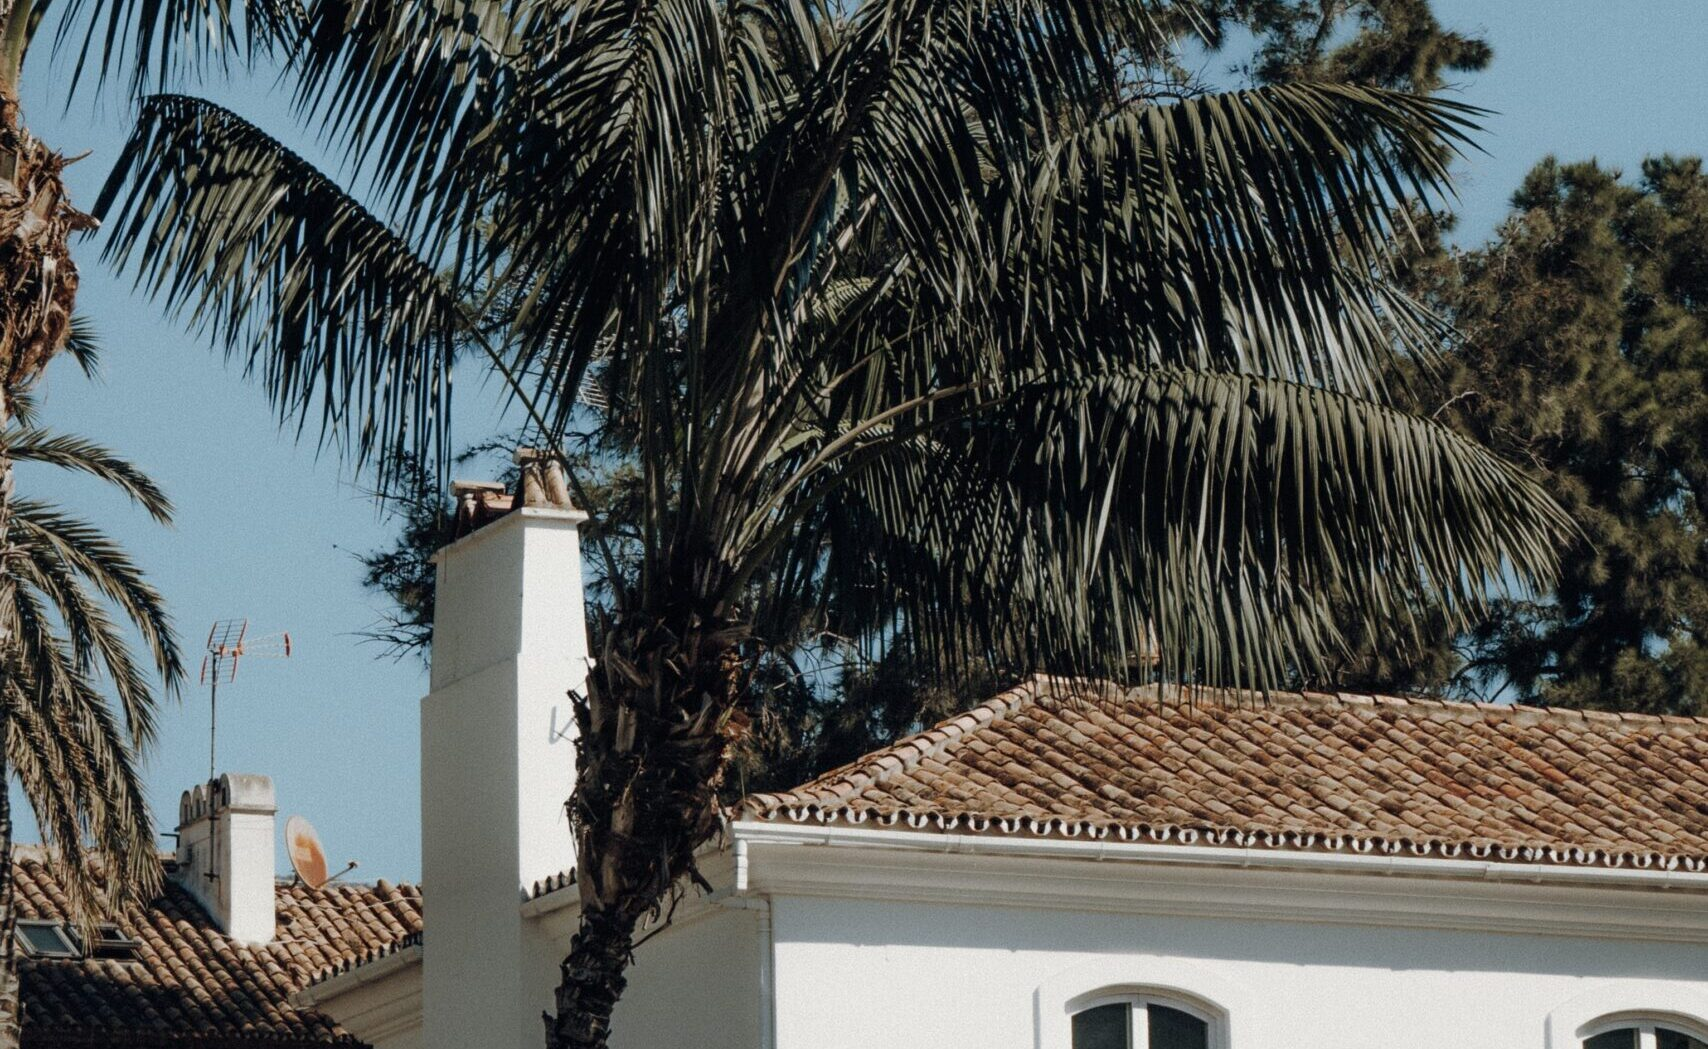 Costa del Sol: the new hotspot for working from home